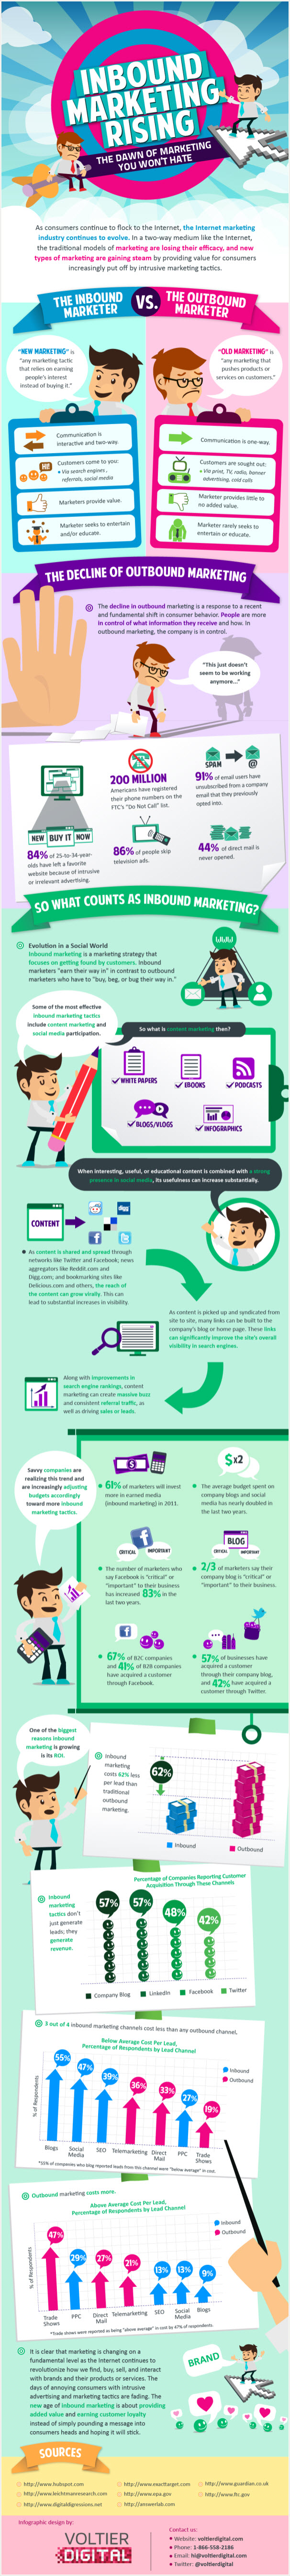 Inbound-Marketing-Rising-infographic